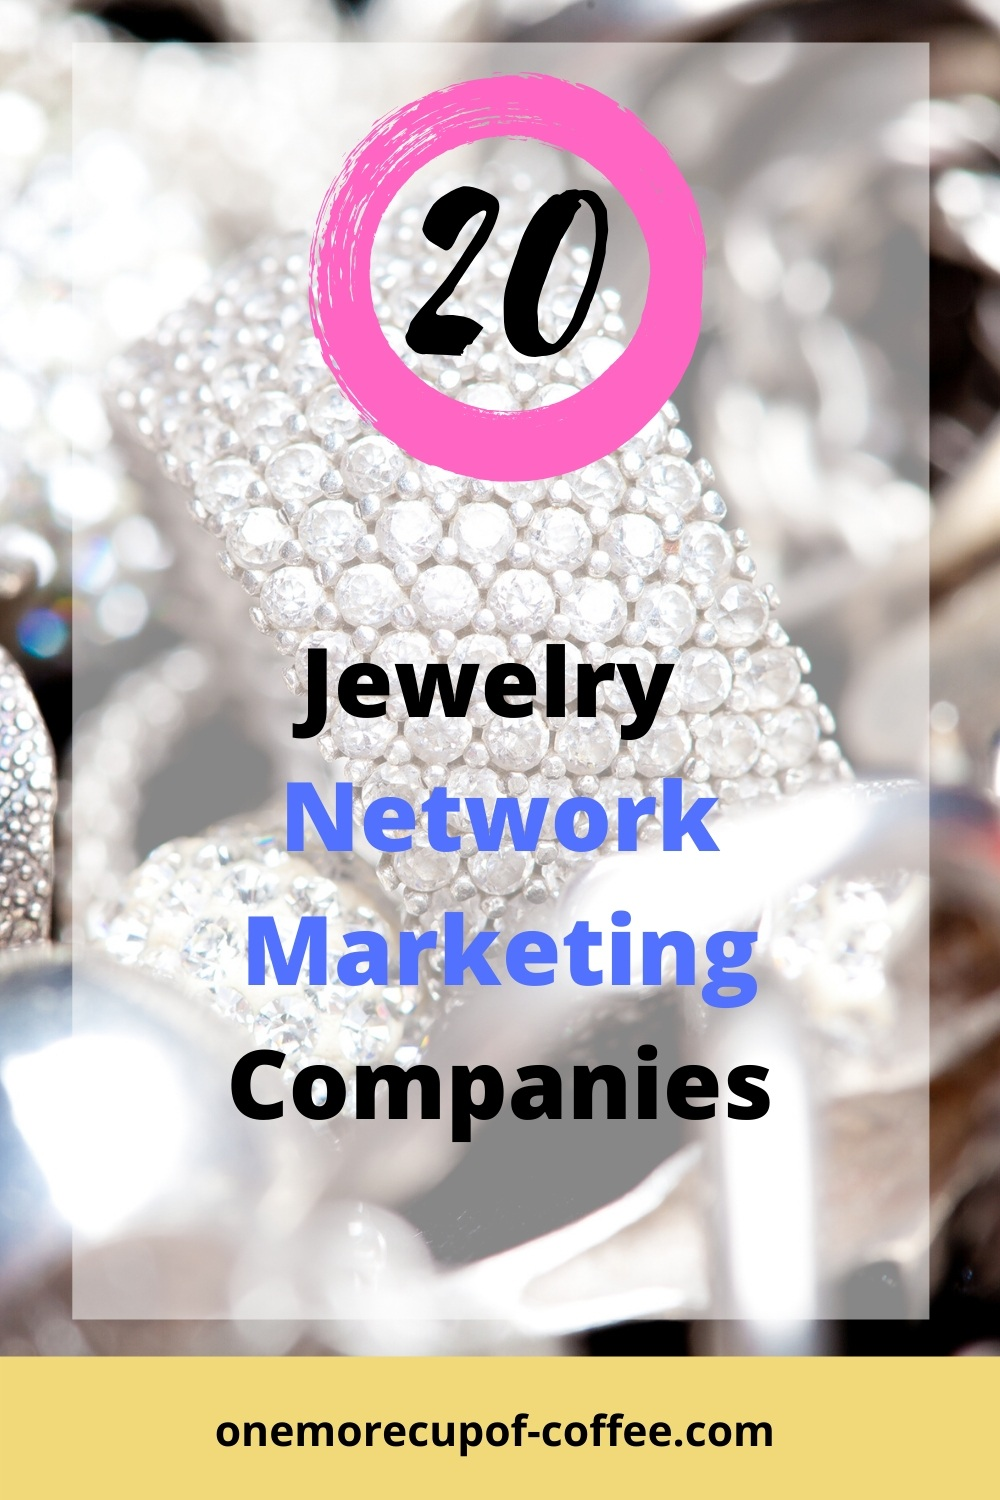 Rings and diamonds to represent Jewlery Network Marketing Companies